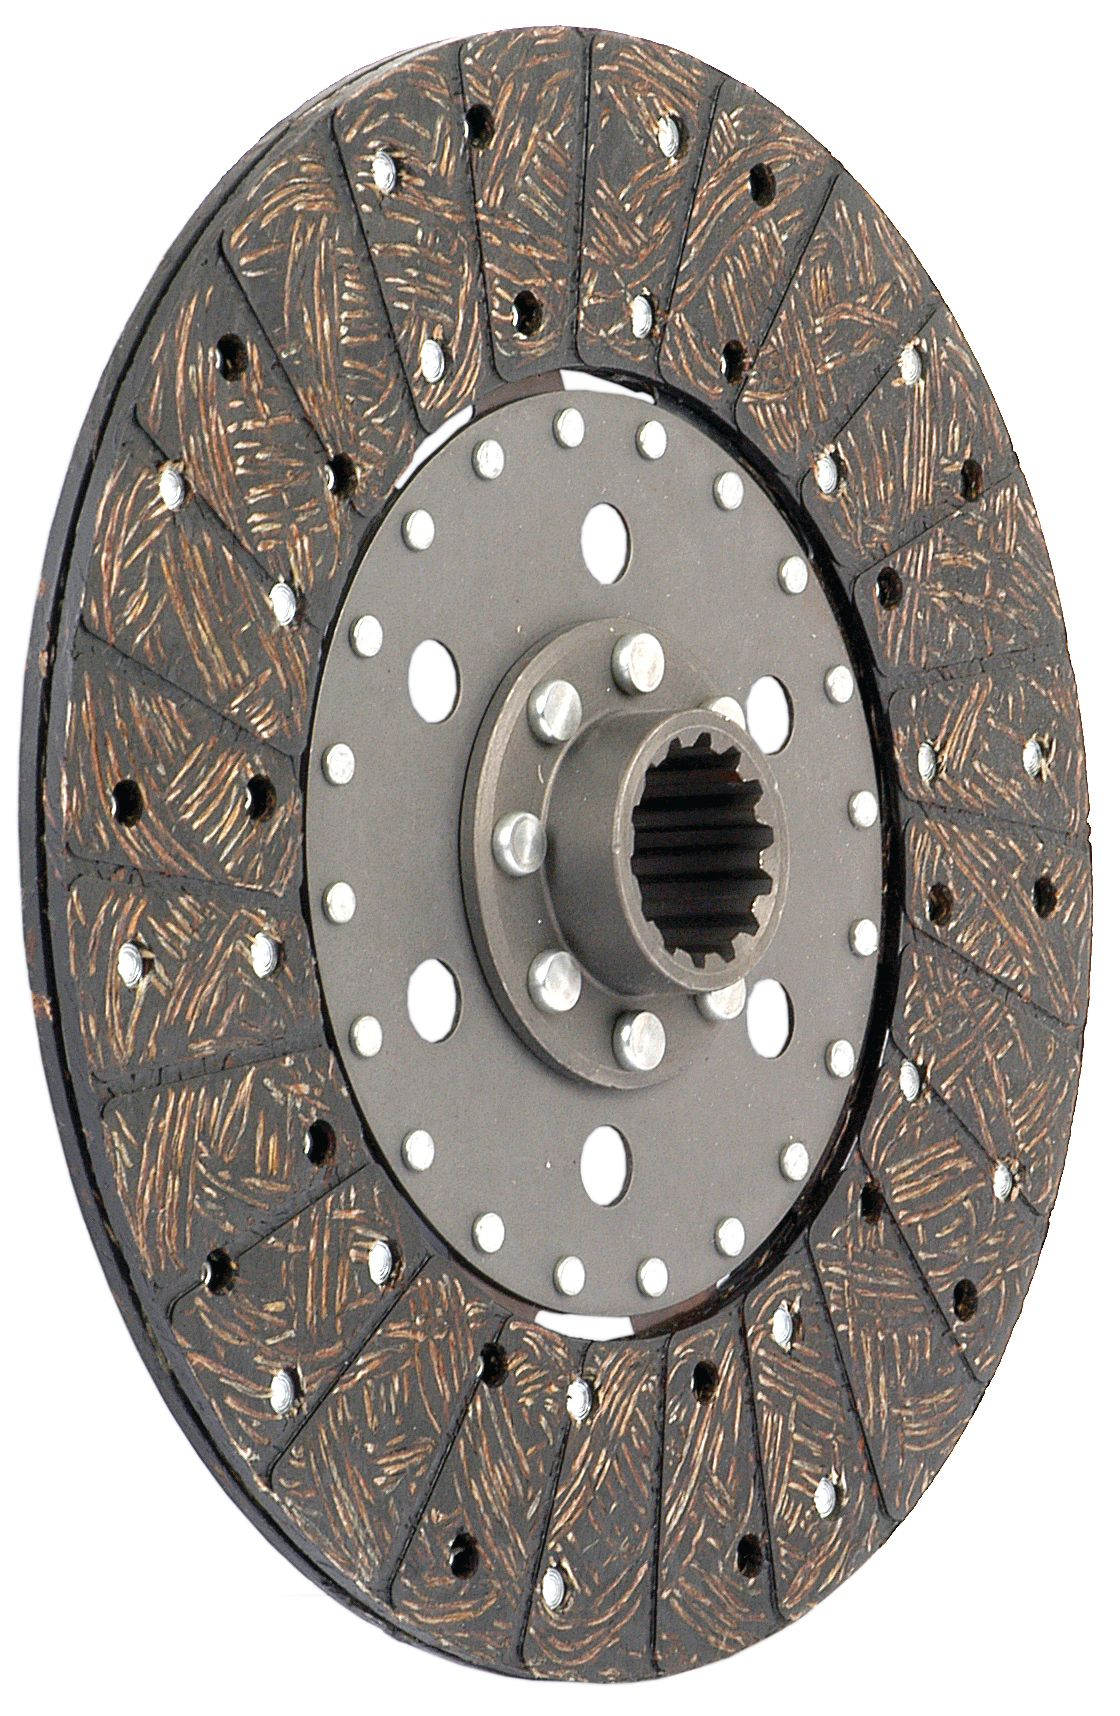 LONG TRACTOR CLUTCH PLATE 280MM 62185